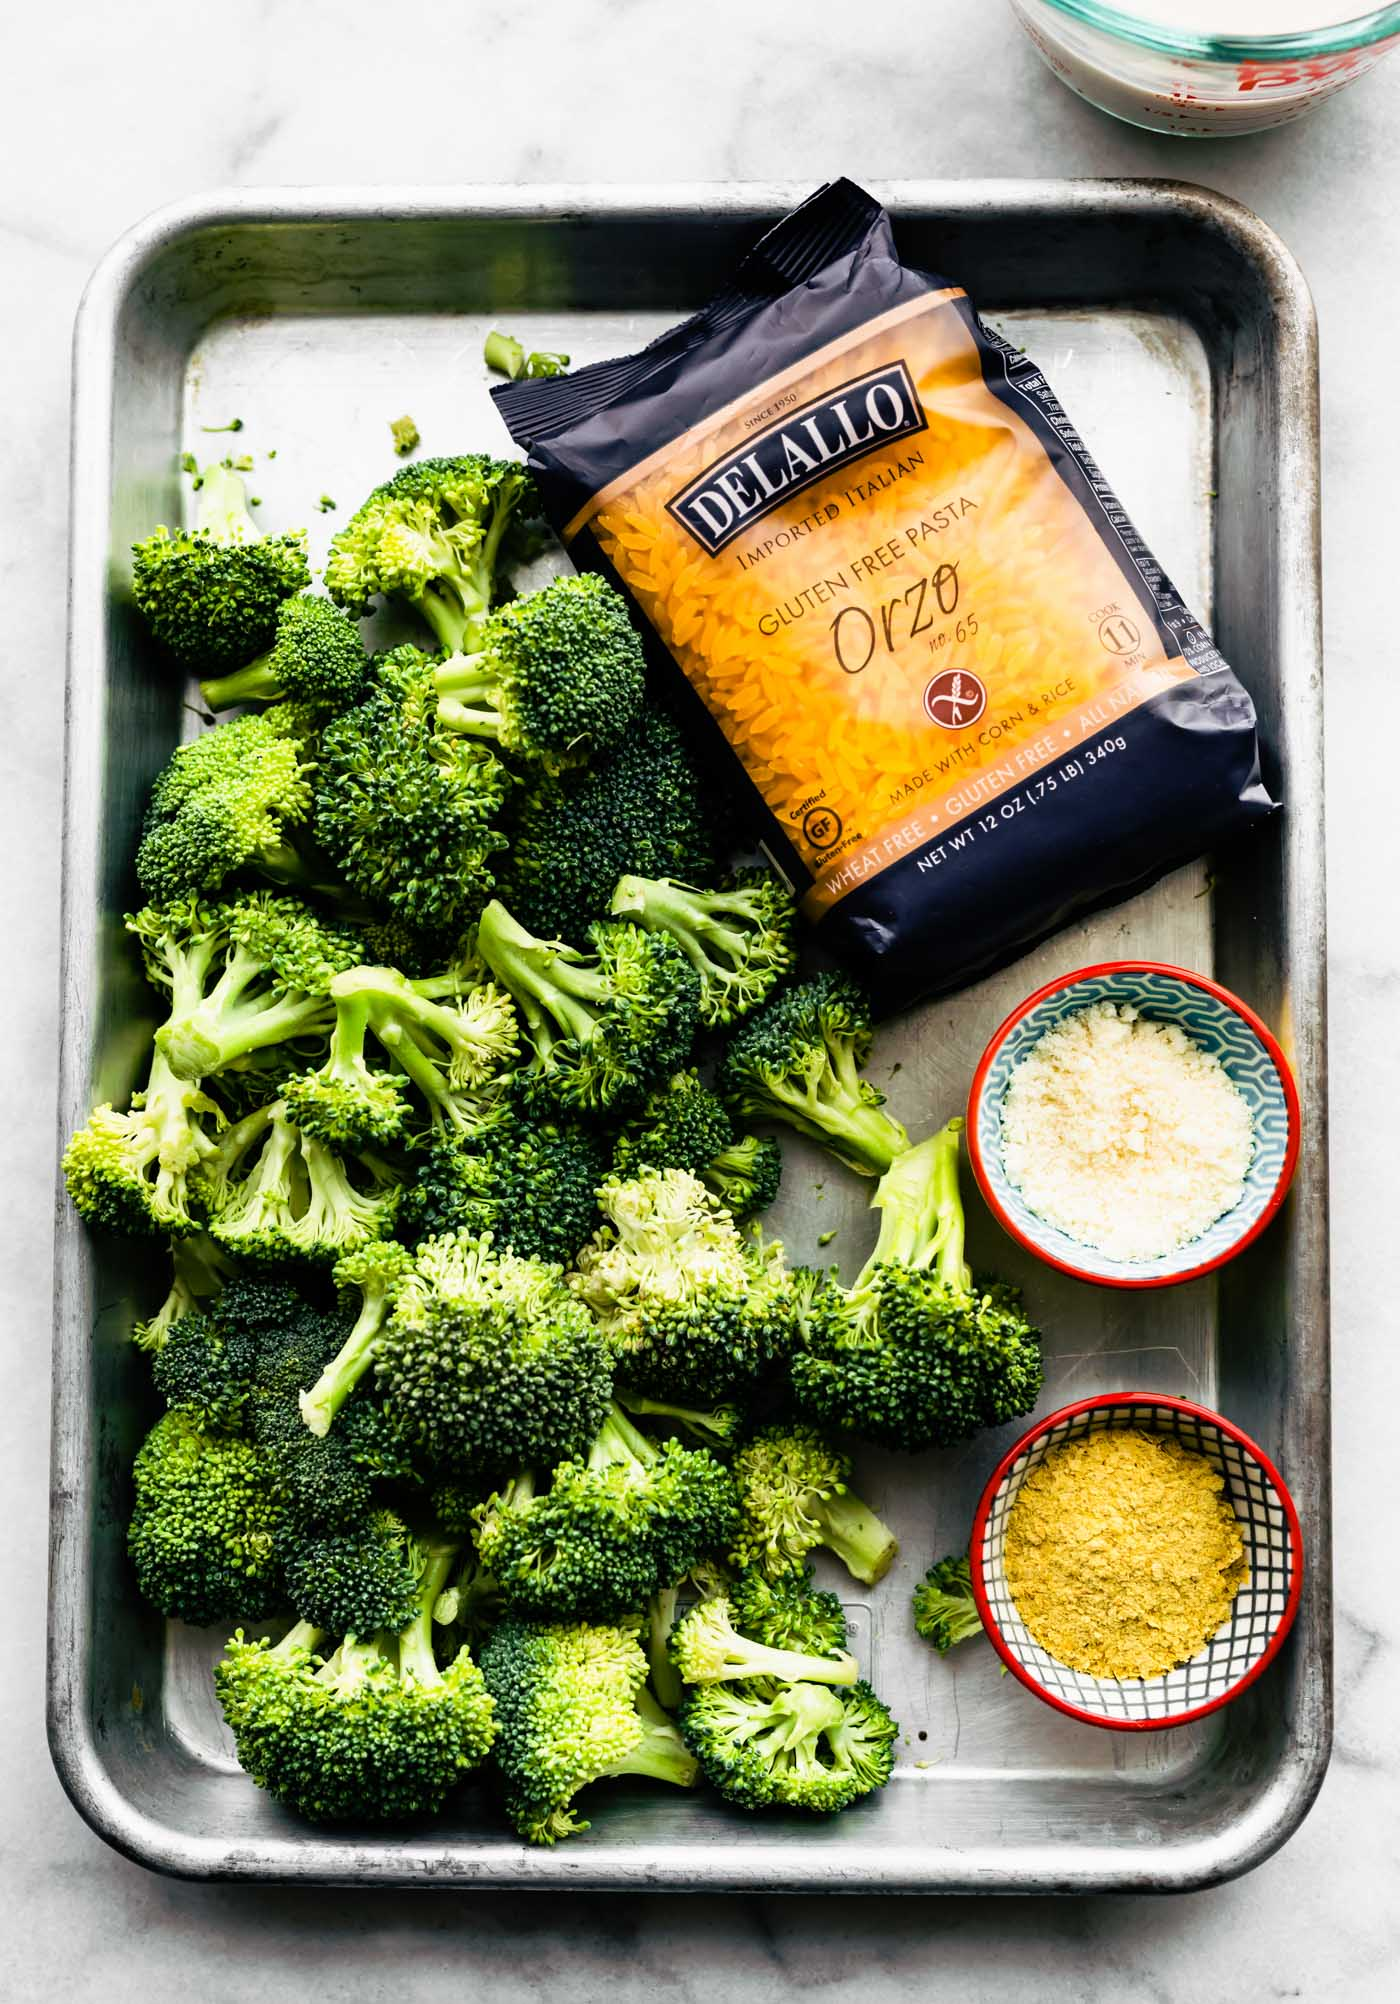 broccoli, orzo, arrowroot flour, and nutritional yeast in a baking dish for broccoli and cheese casserole